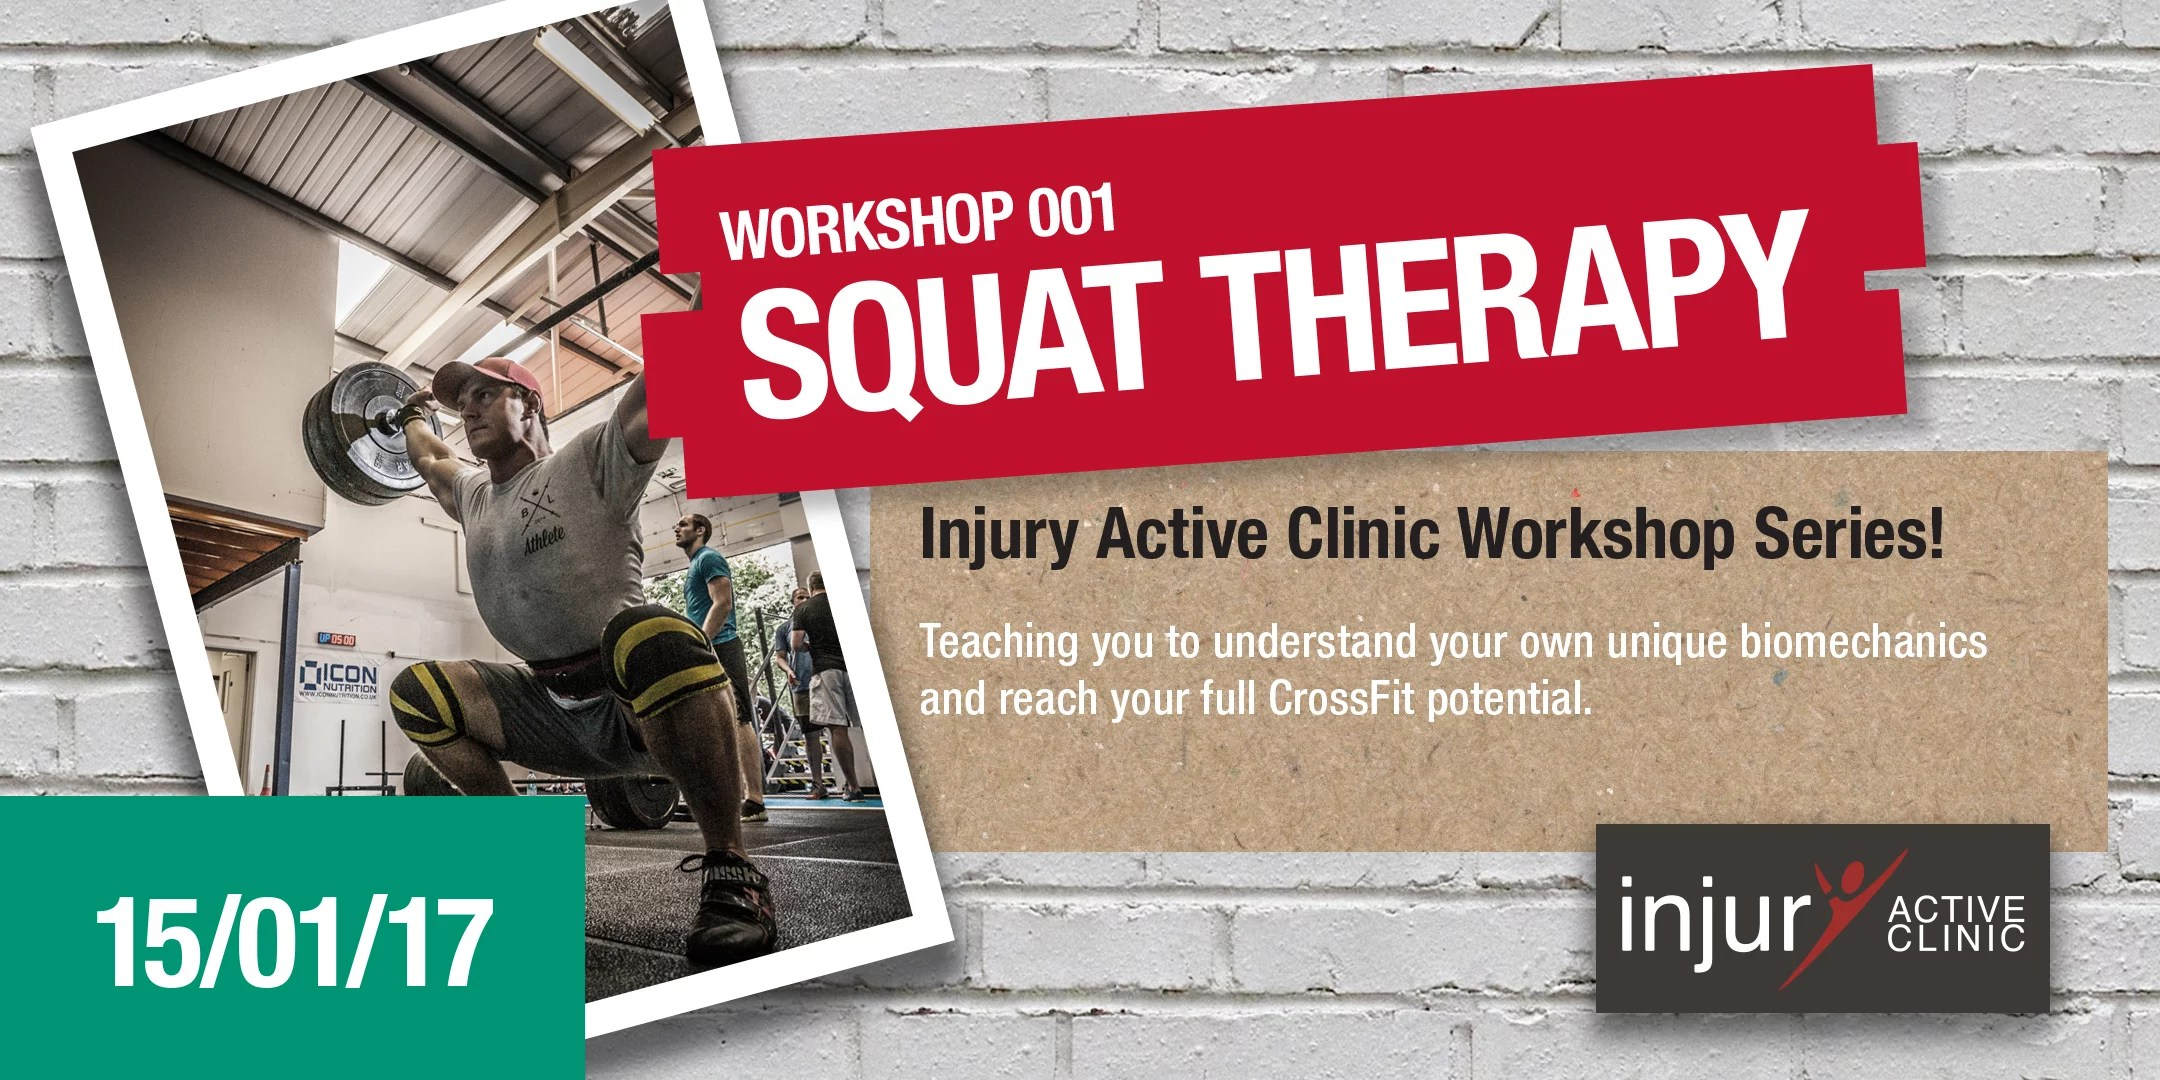 Injury Active Clinic Workshop 001 'Squat Therapy'